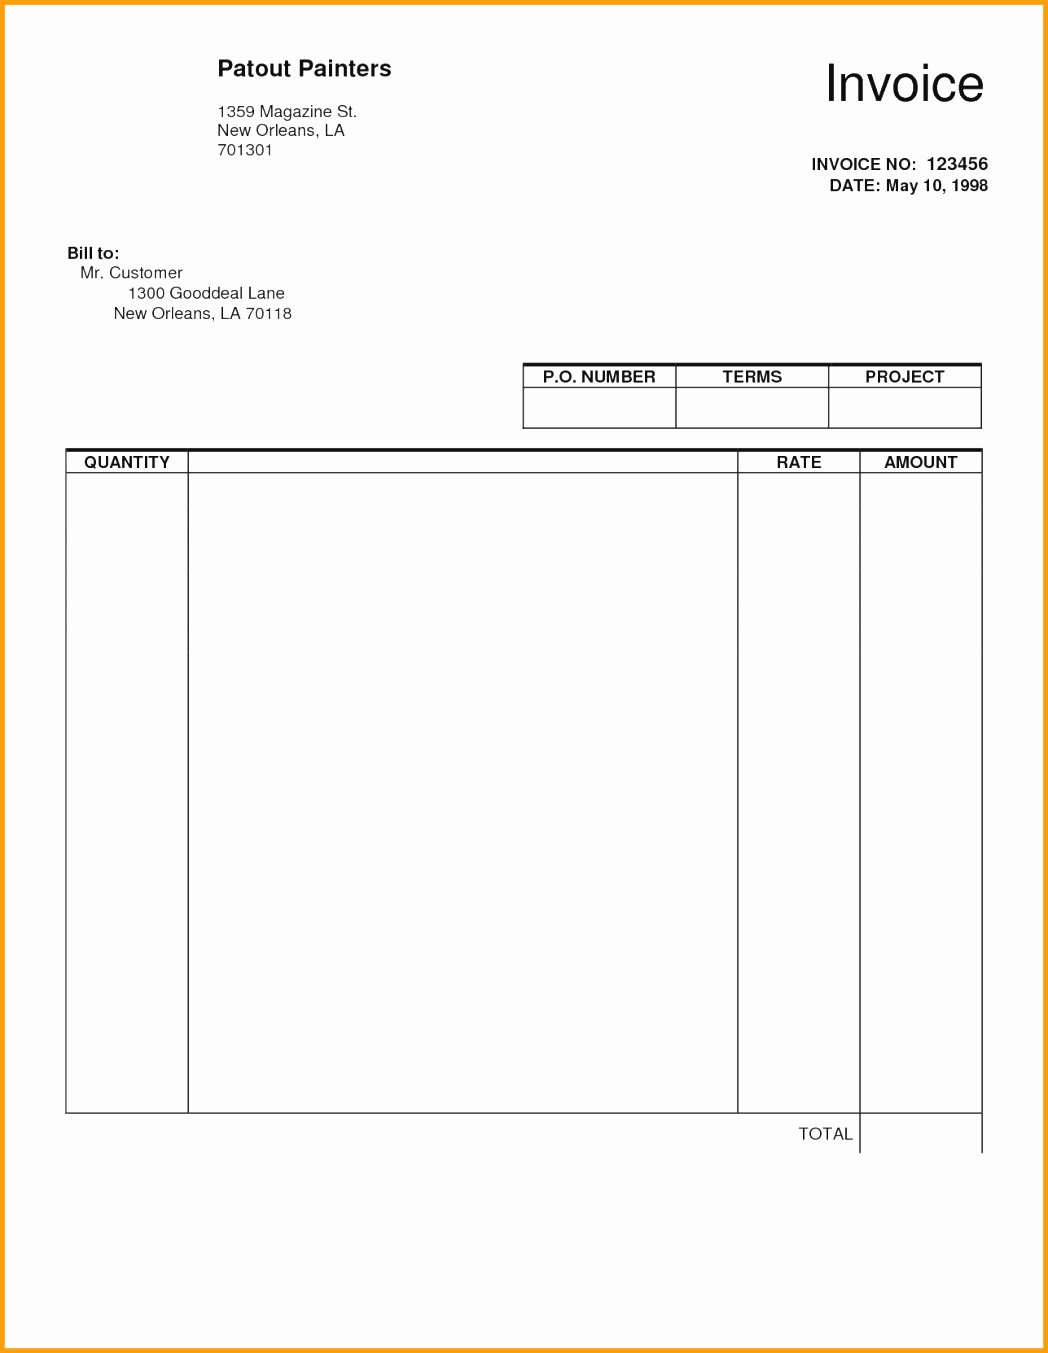 Self Employed Invoice Template Beautiful Self Employed Invoice Template Word 10 Colorium Laboratorium